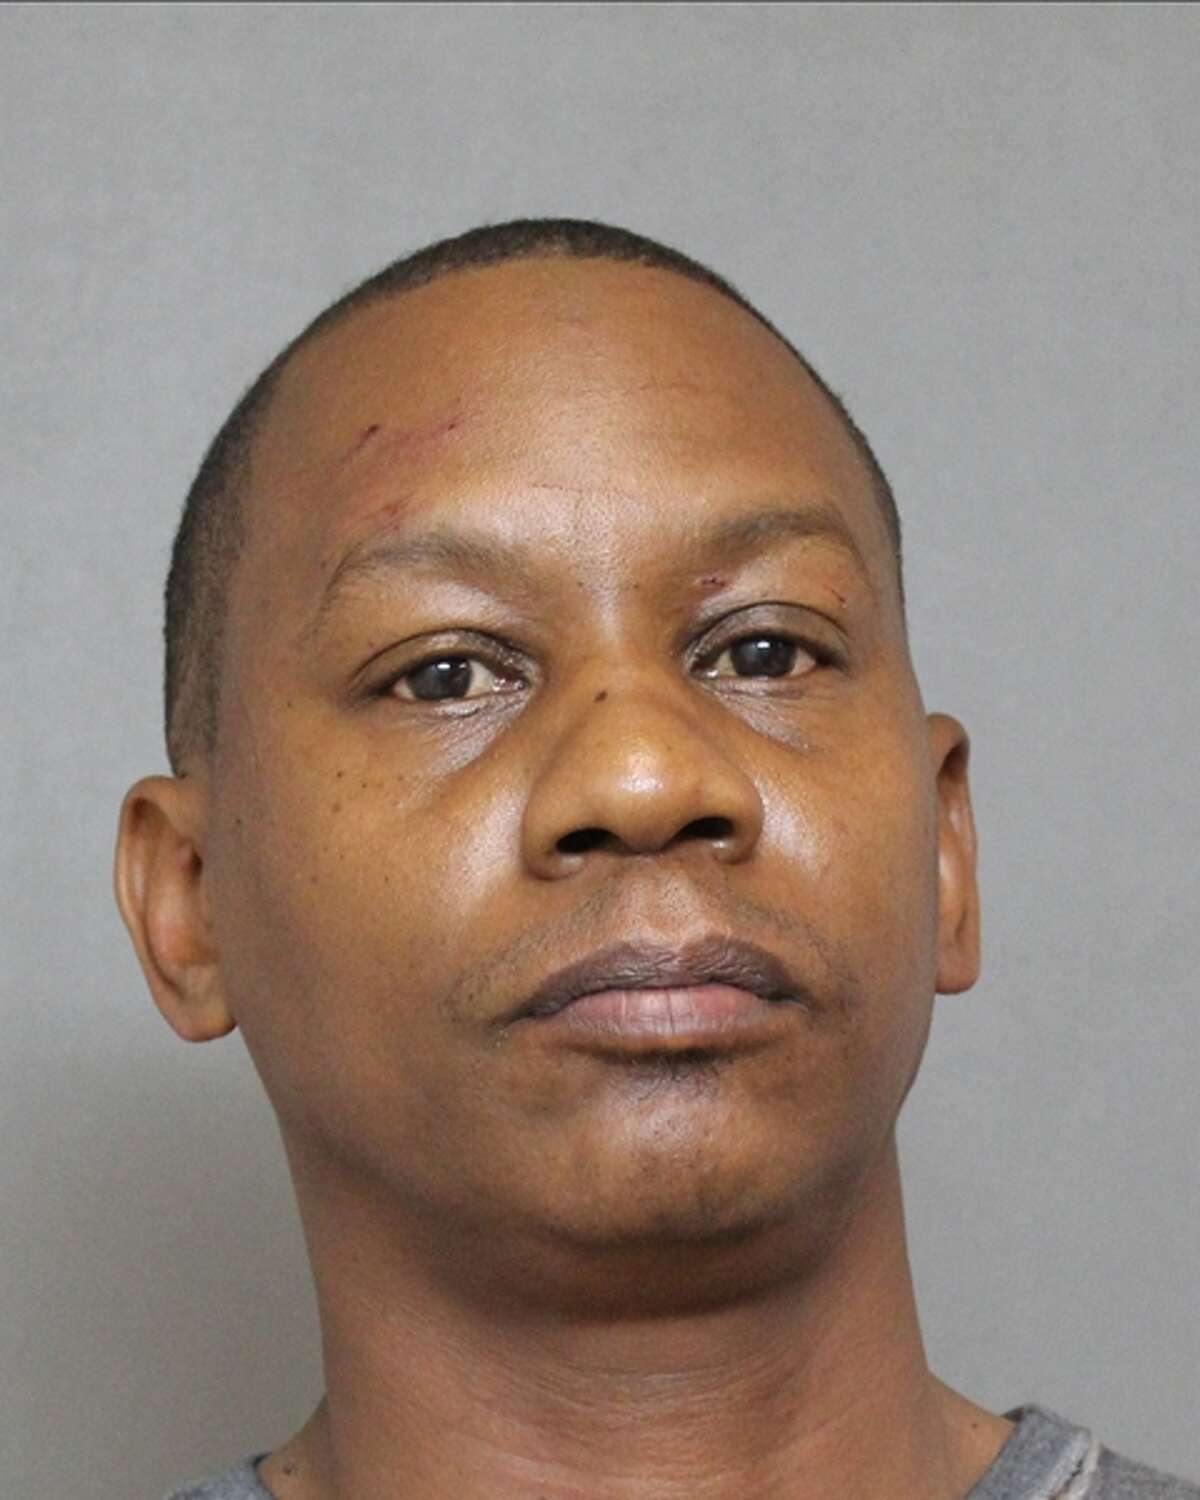 Christopher Sedrick Brown, 46, was charged with felony possession of marijuana and evading arrest with a motor vehicle.